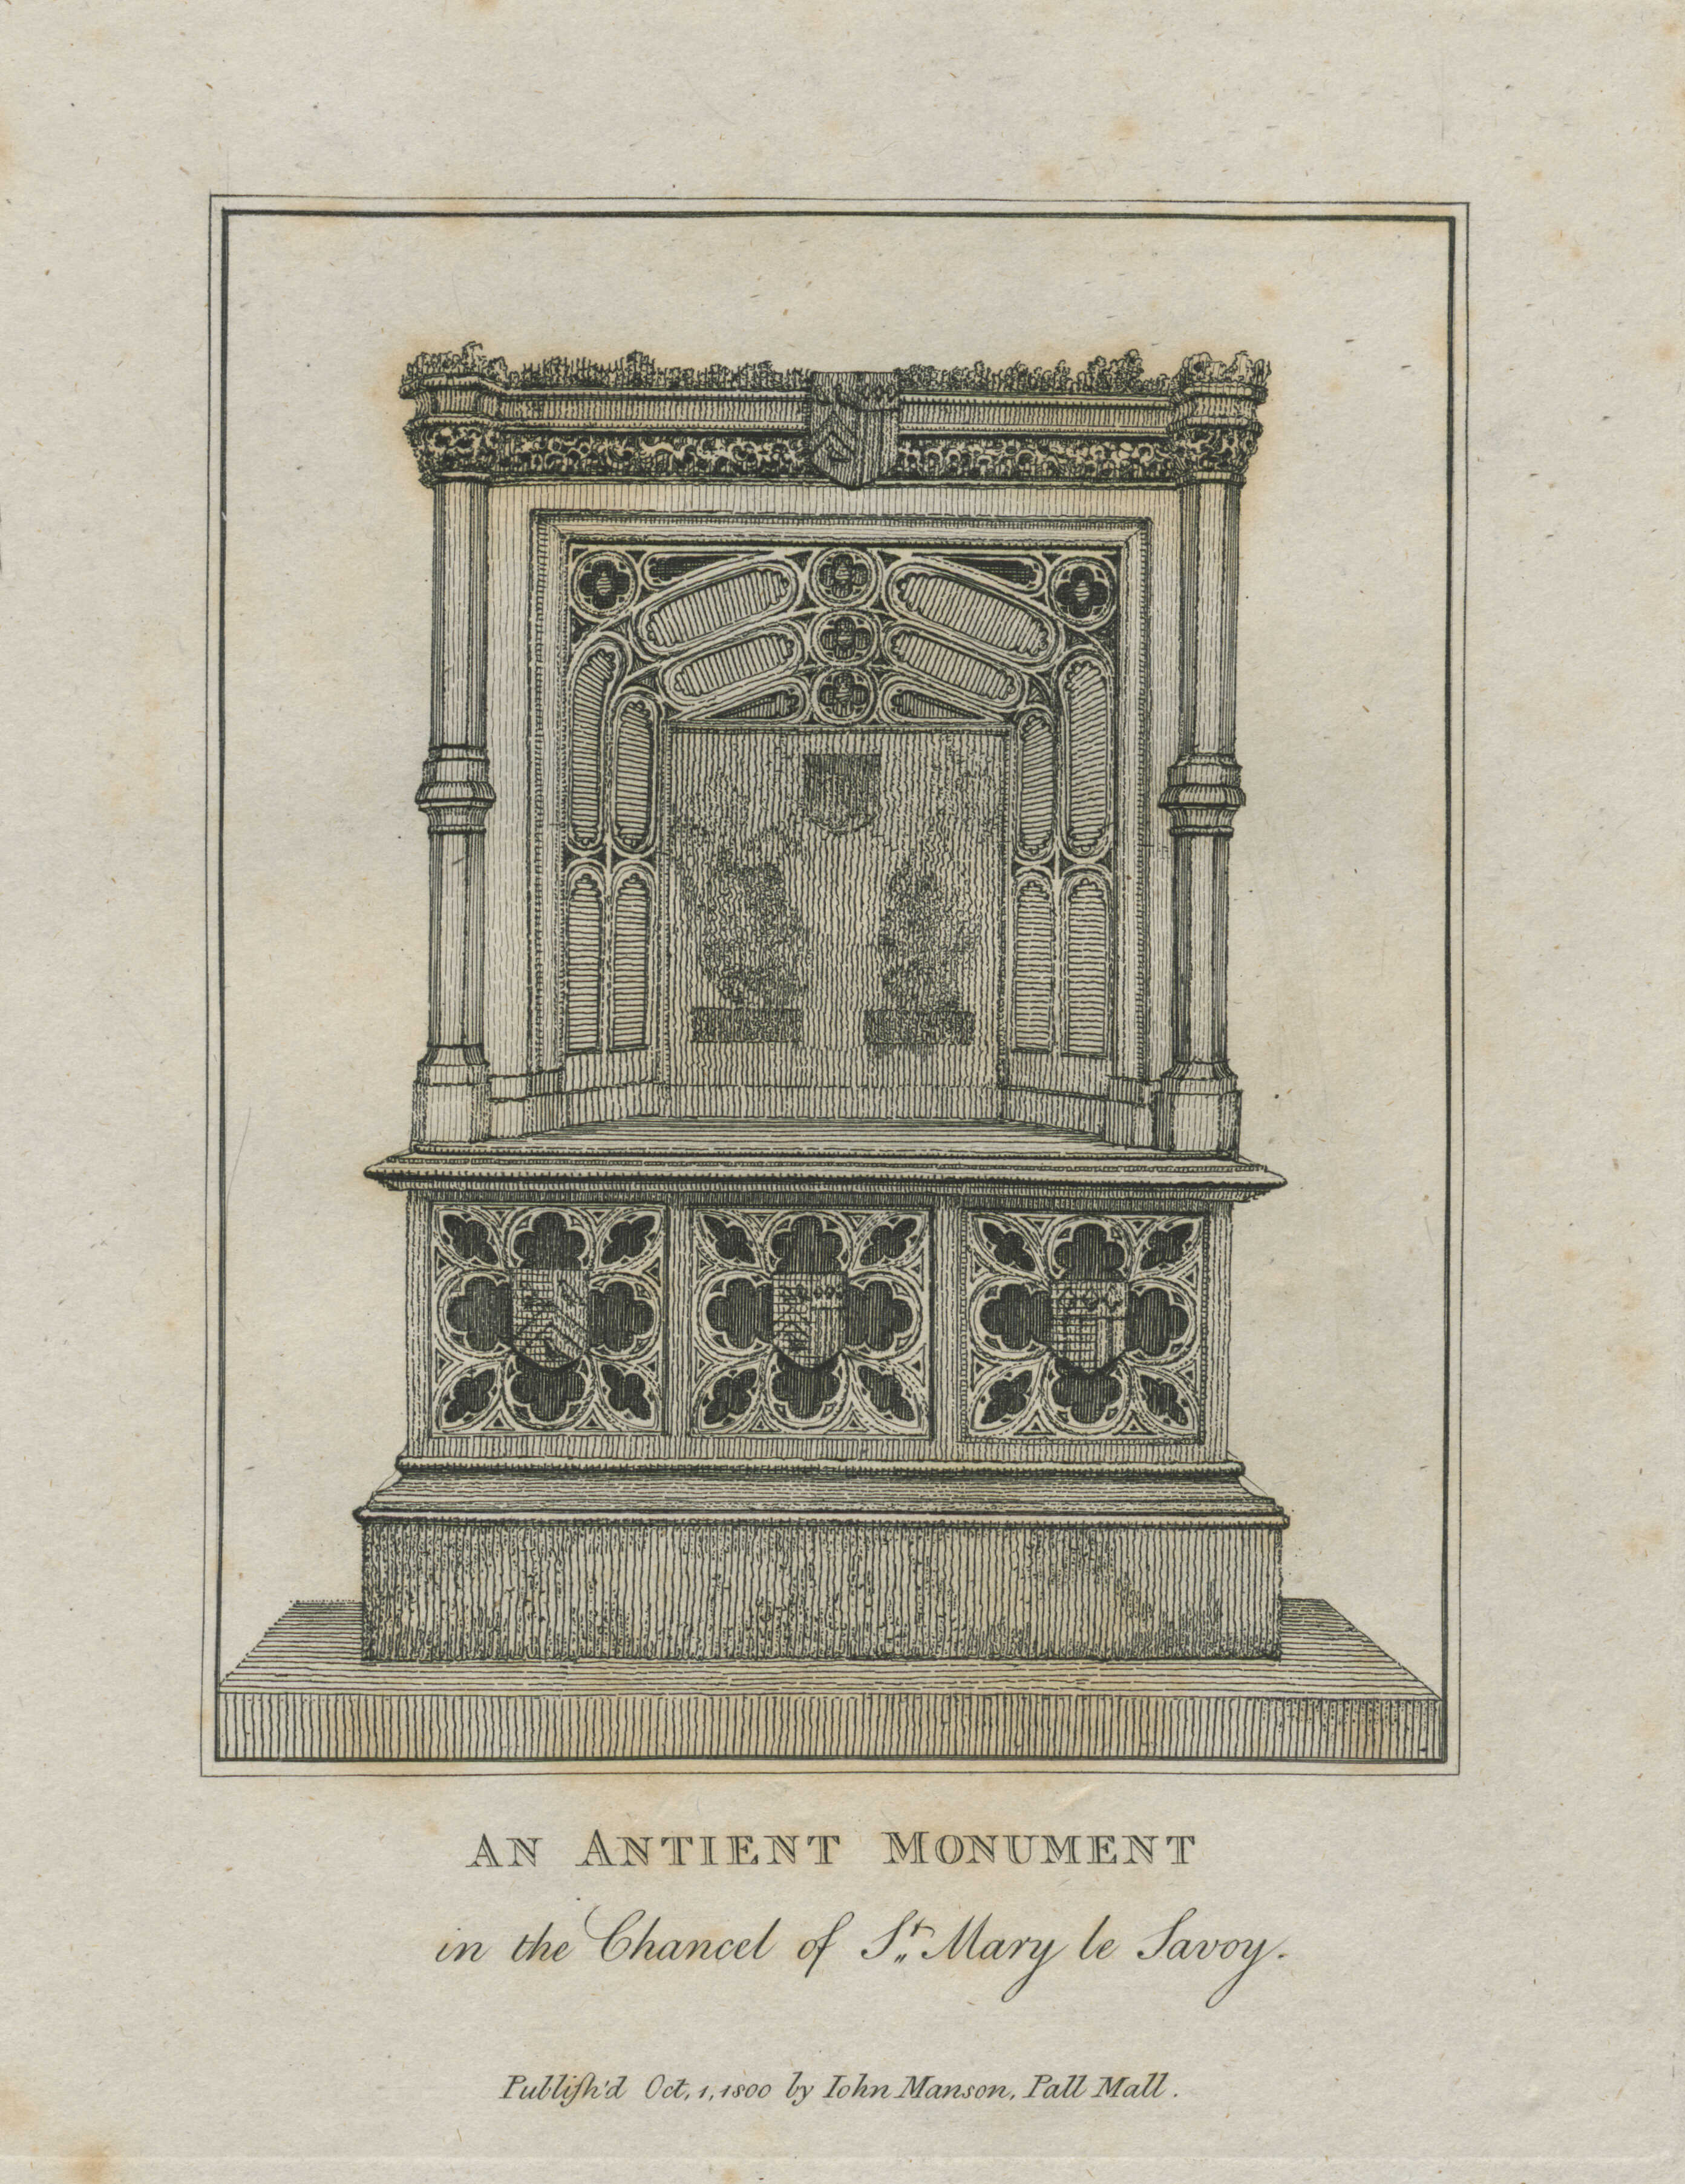 95-an-antient-monument-in-the-chancel-of-st-mary-le-savoy